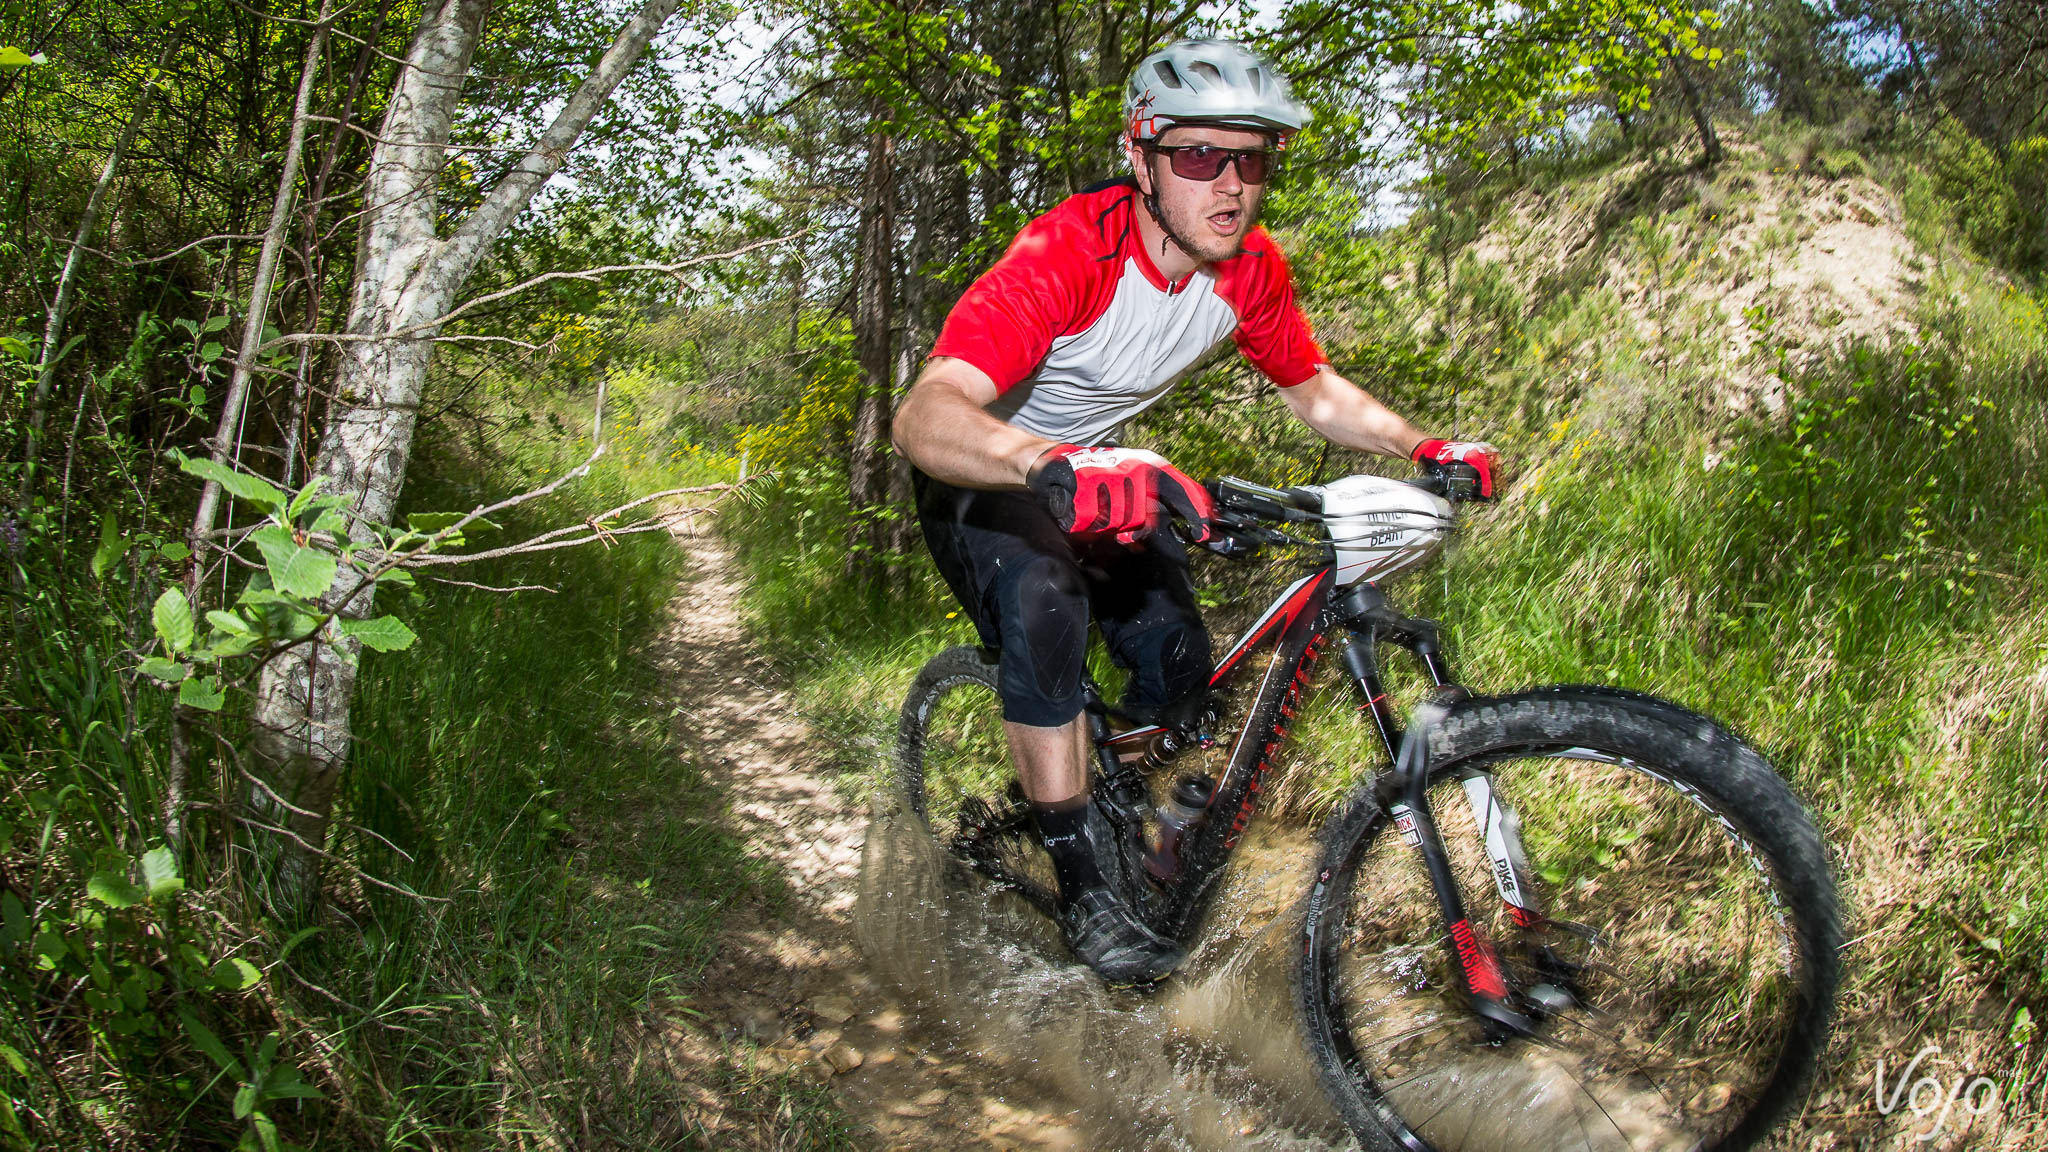 Specialized_Stumpjumper_Action_Copyright_Manu_Molle_VojoMag-7